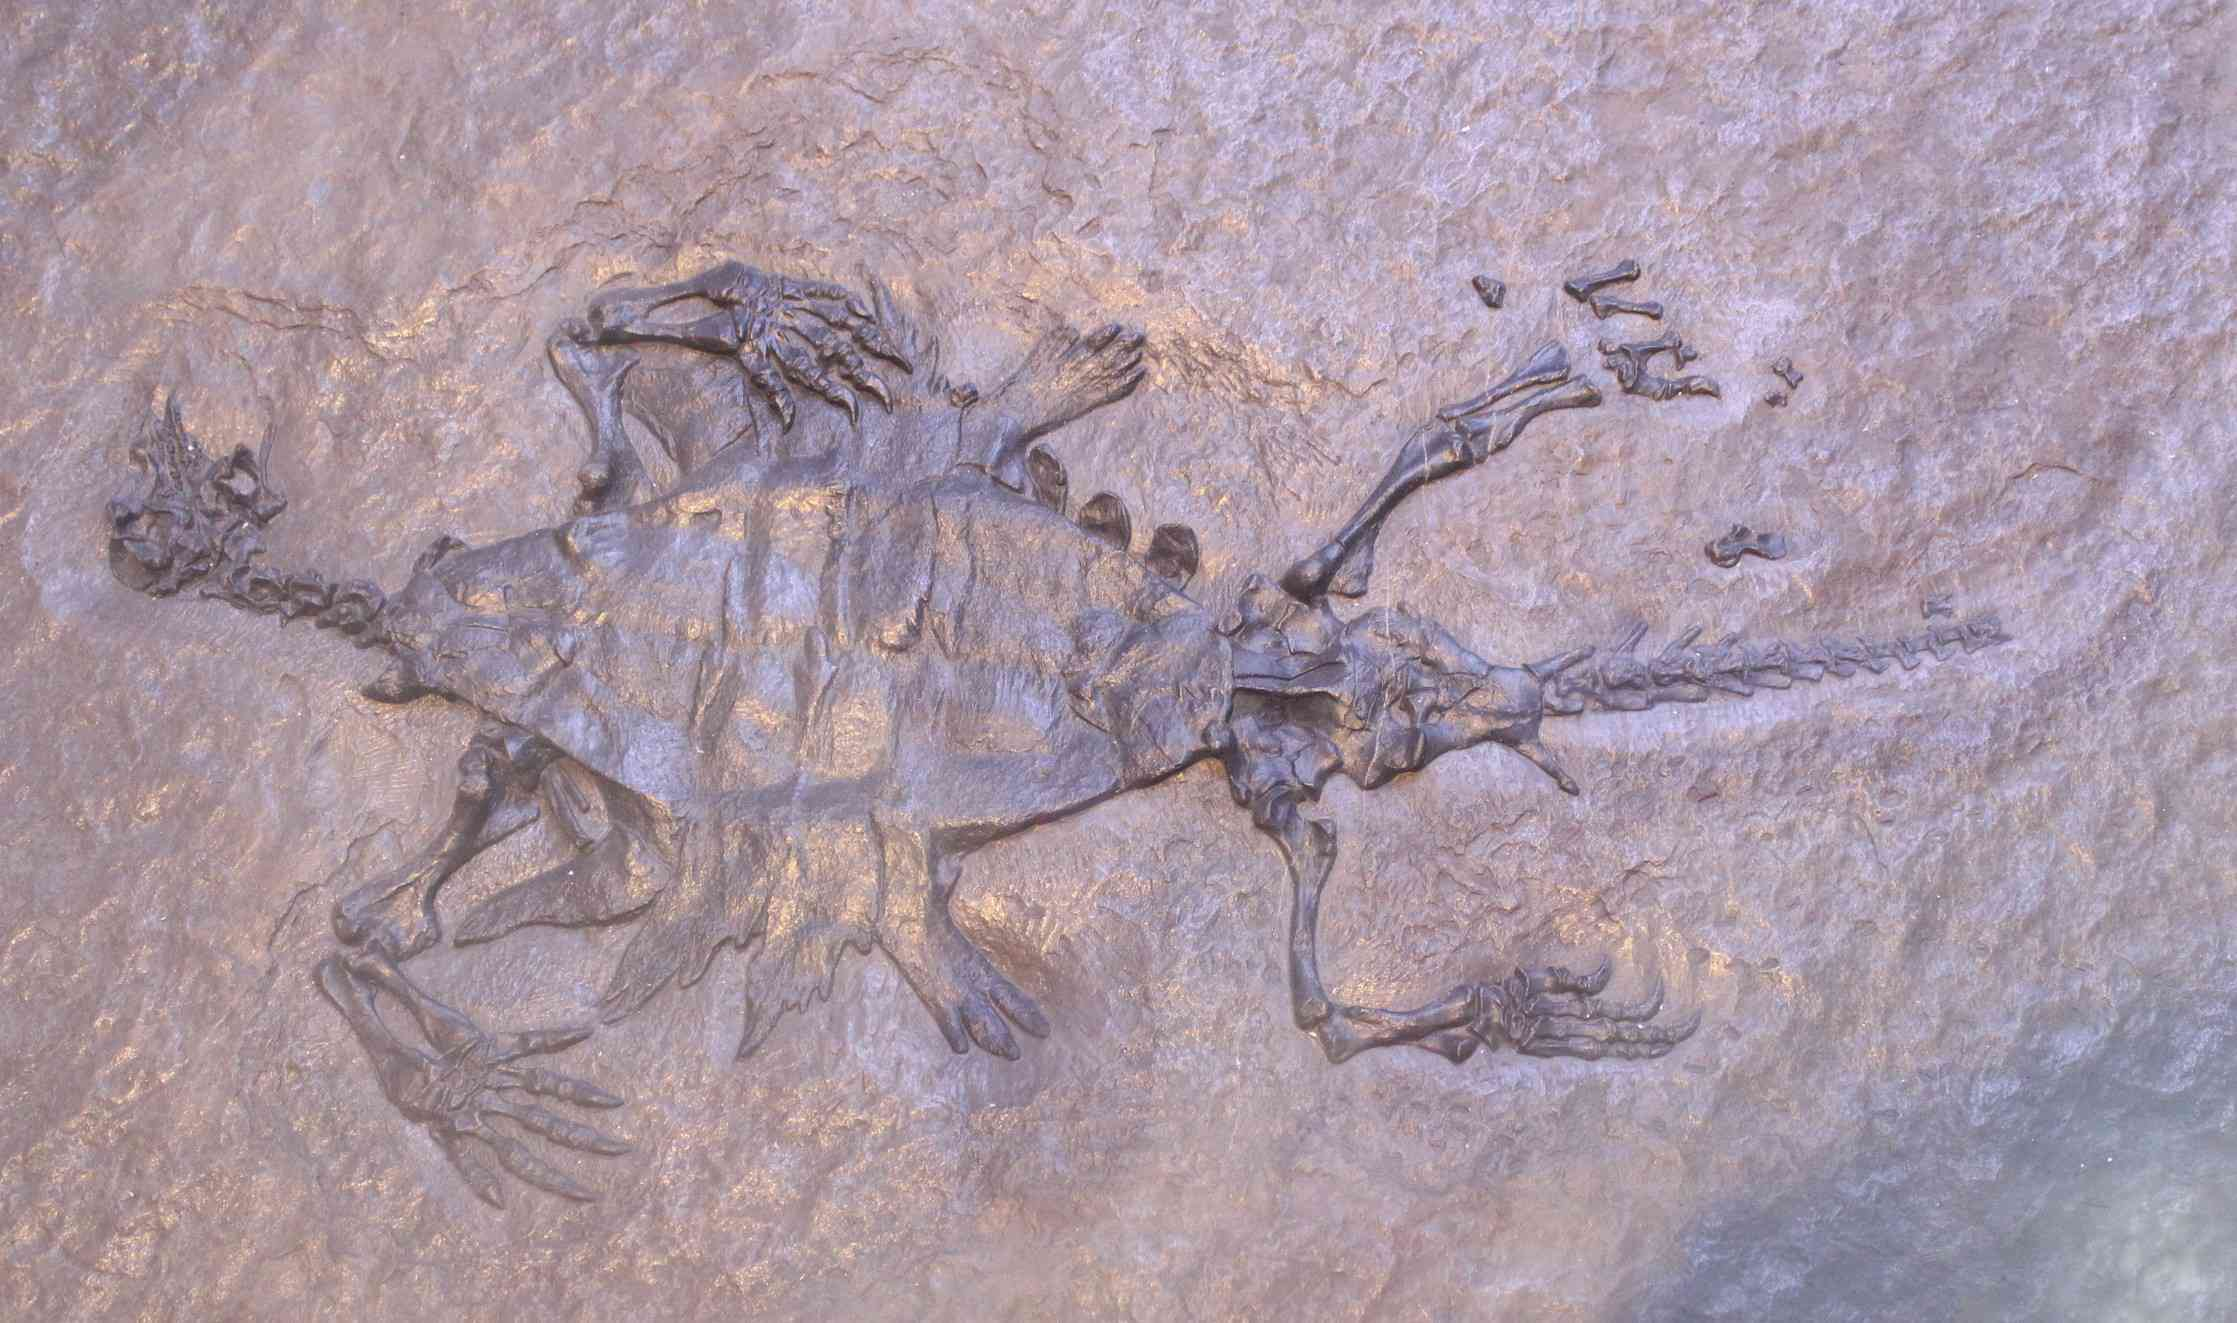 Paratype of Odontochelys semitestacea on display at the Paleozoological Museum of China.